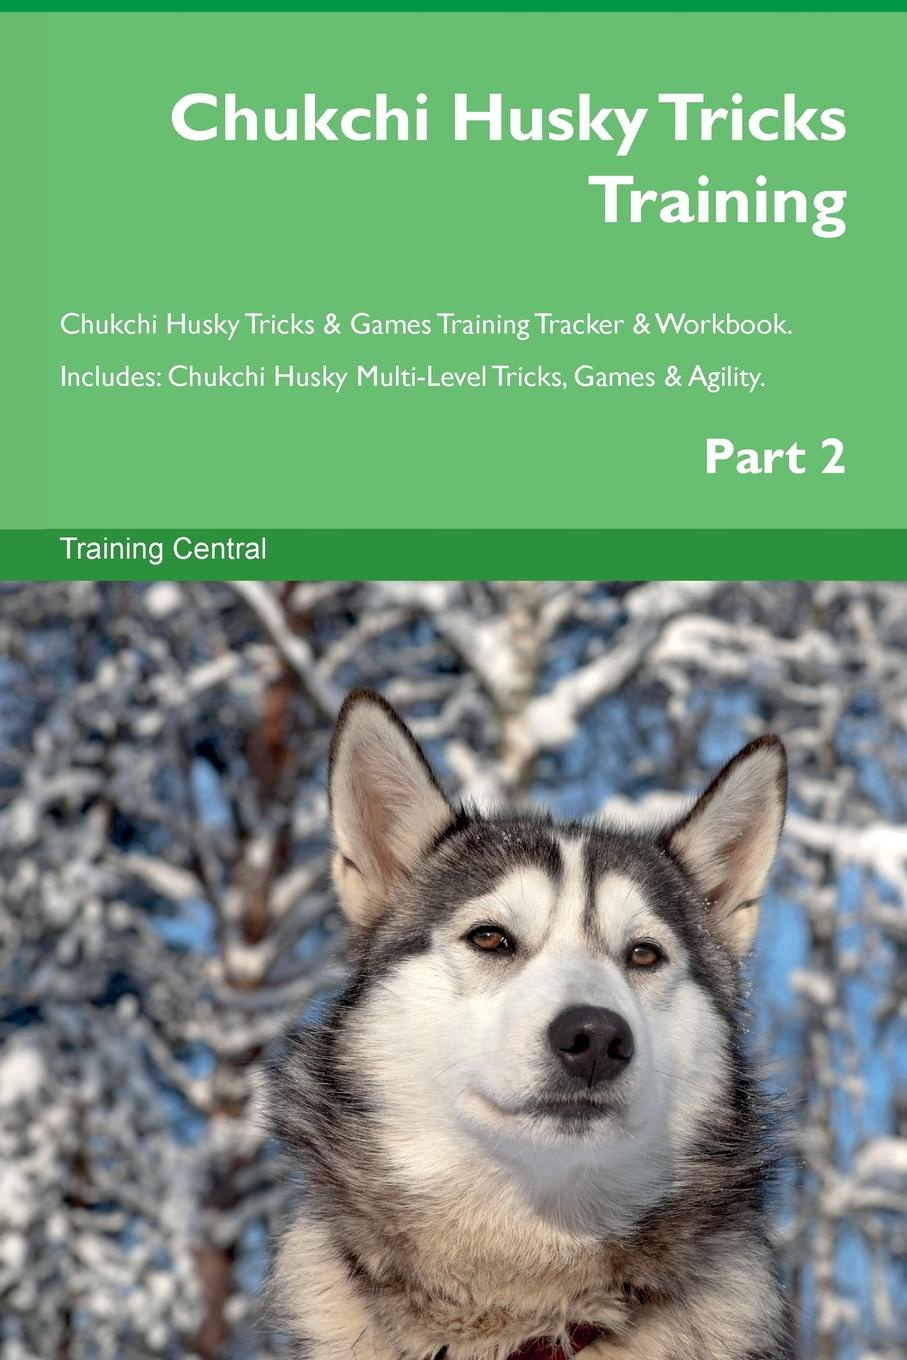 Training Central Chukchi Husky Tricks Training Chukchi Husky Tricks & Games Training Tracker & Workbook. Includes. Chukchi Husky Multi-Level Tricks, Games & Agility. Part 2 training central siberian husky tricks training siberian husky tricks games training tracker workbook includes siberian husky multi level tricks games agility part 2